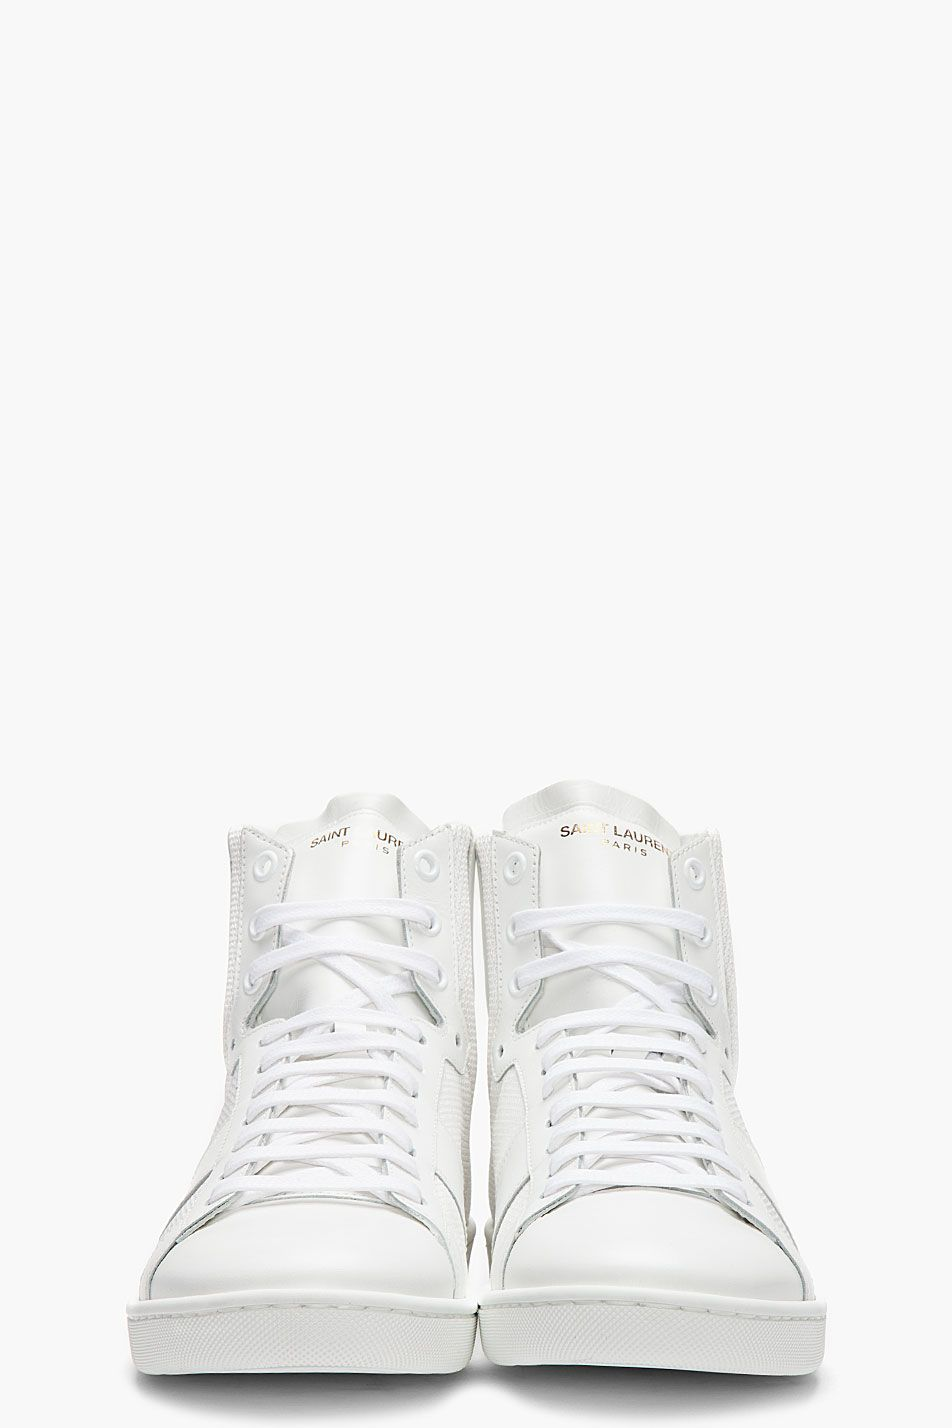 SAINT LAURENT //  White leather-paneled high-tops  32418M050006  Buffed leather high-top sneakers in white. Tonal textile panels. Round toe. Tonal lace-up closure. Logo stamp at padded tongue. Tonal logo stamp at heel collar. White rubber sole with textured sole walls. Tonal stitching. Upper: leather and textile. Lining: leather. Sole: rubber. Made in Italy.  $705 CAD